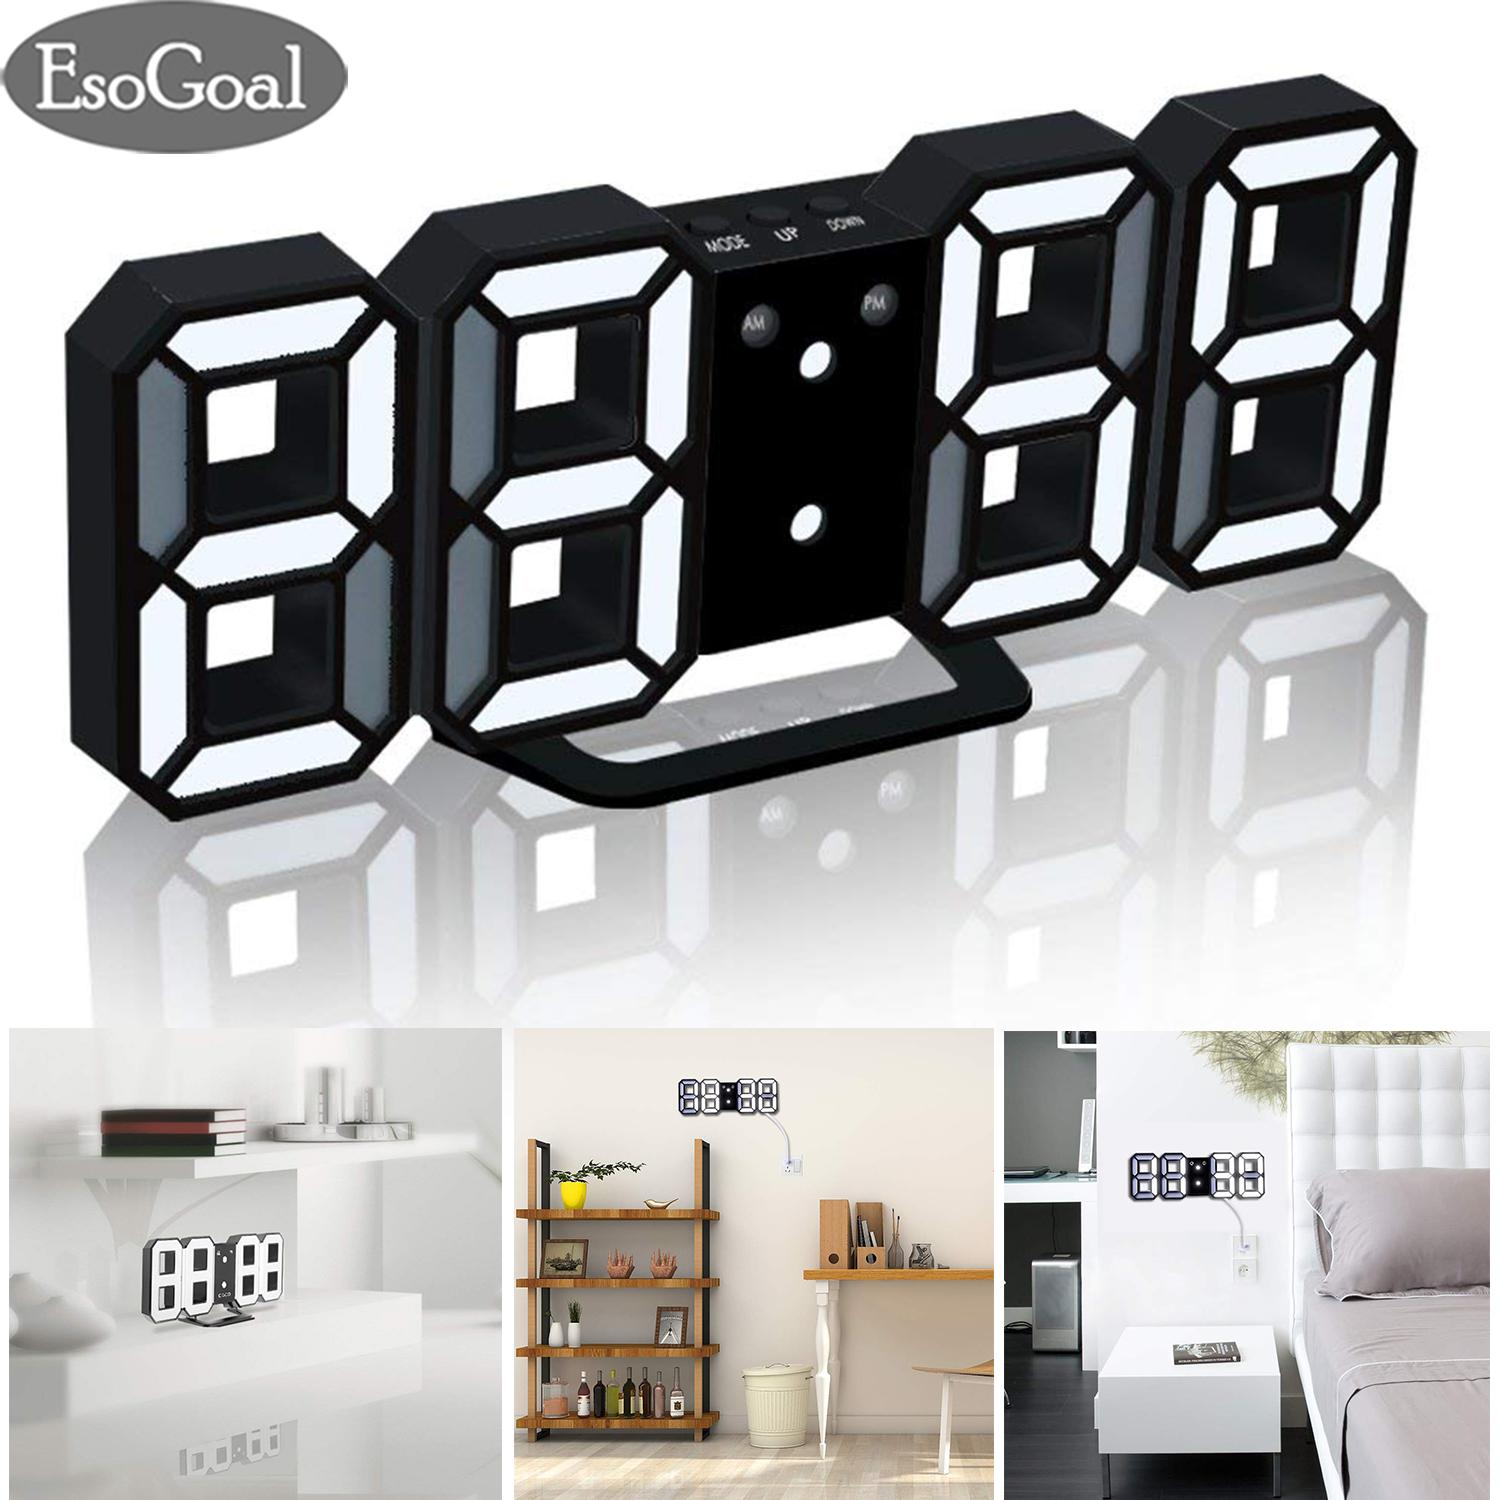 EsoGoal Jam Digital Dinding Modern LED Digital Wall Clock Digital Table Clock Desk Clock Alarm Clock